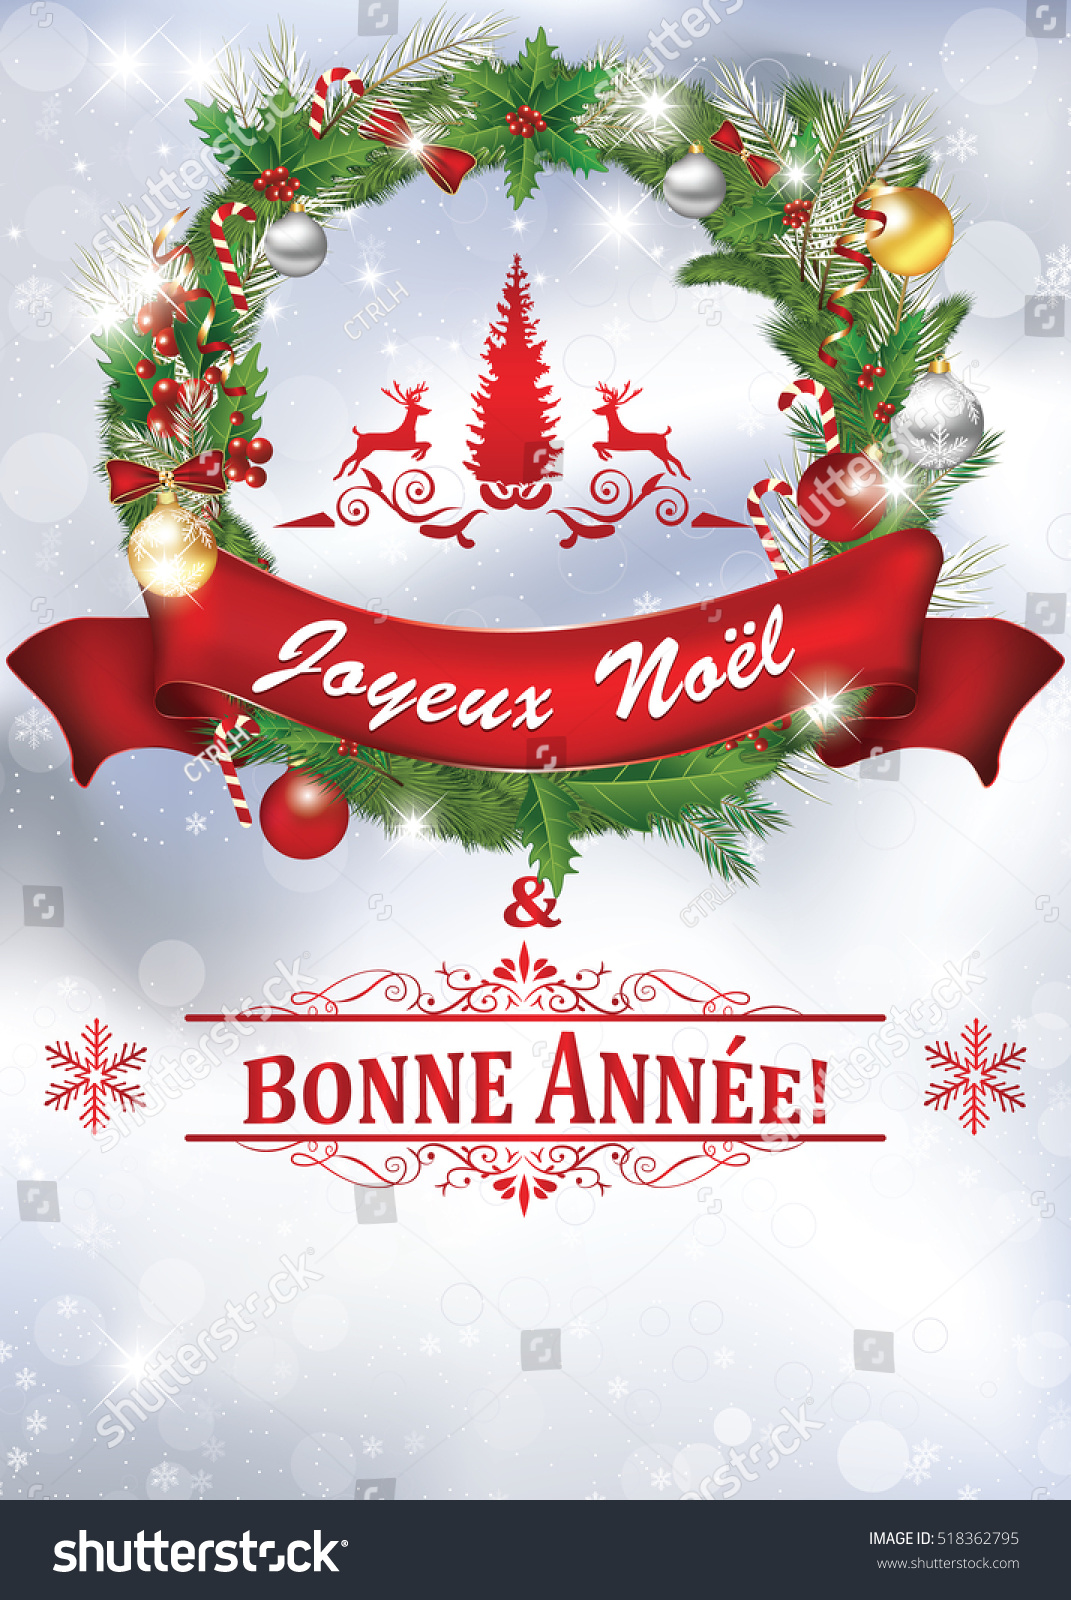 Printable New Year Greeting Card With Message In French ...